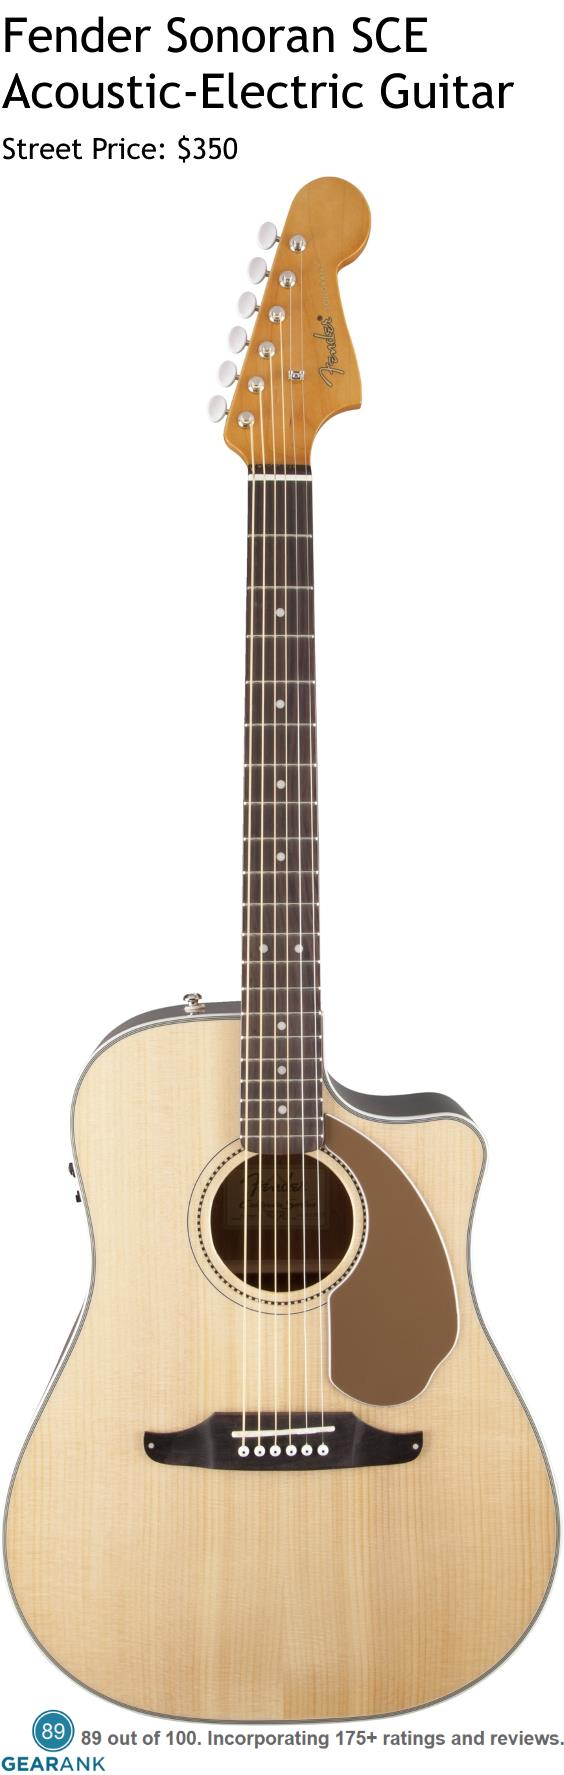 hight resolution of fender sonoran sce acoustic electric guitar it has a solid spruce top with scalloped x bracing and mahogany back and sides for the electronics it uses